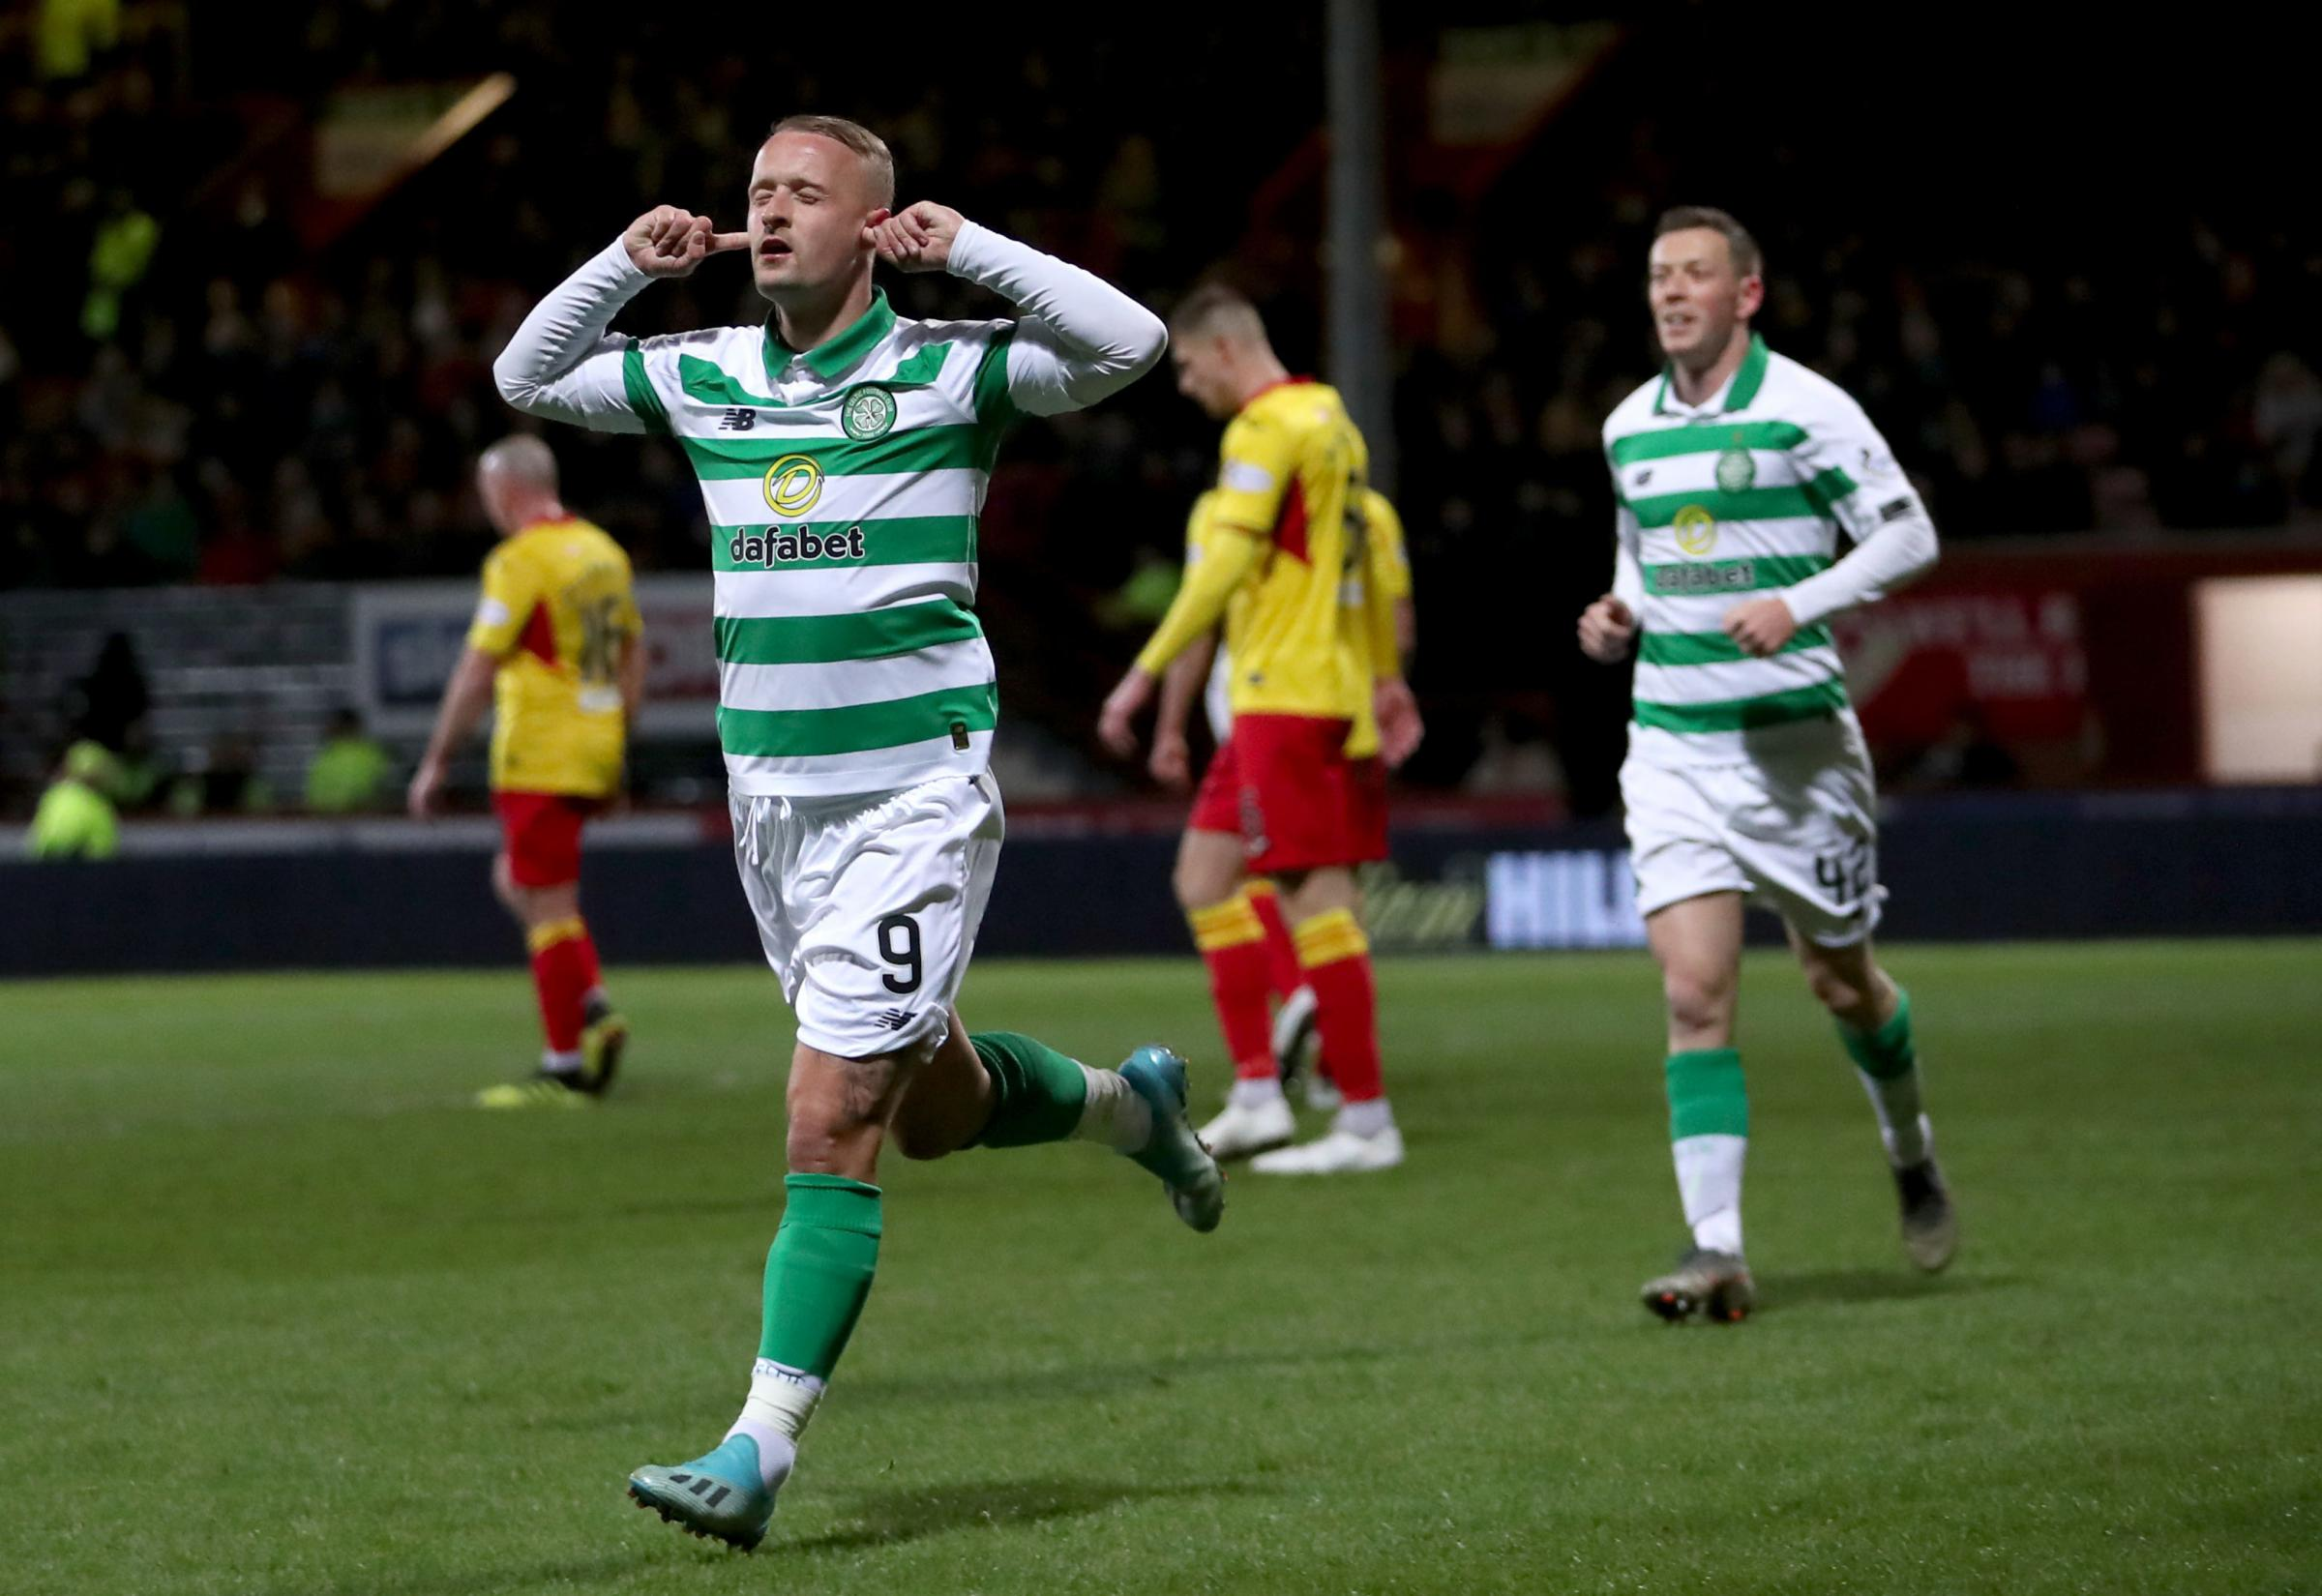 Neil Lennon: Griffiths has devilment in him, I'm happy for him to silence critics like Nicholas